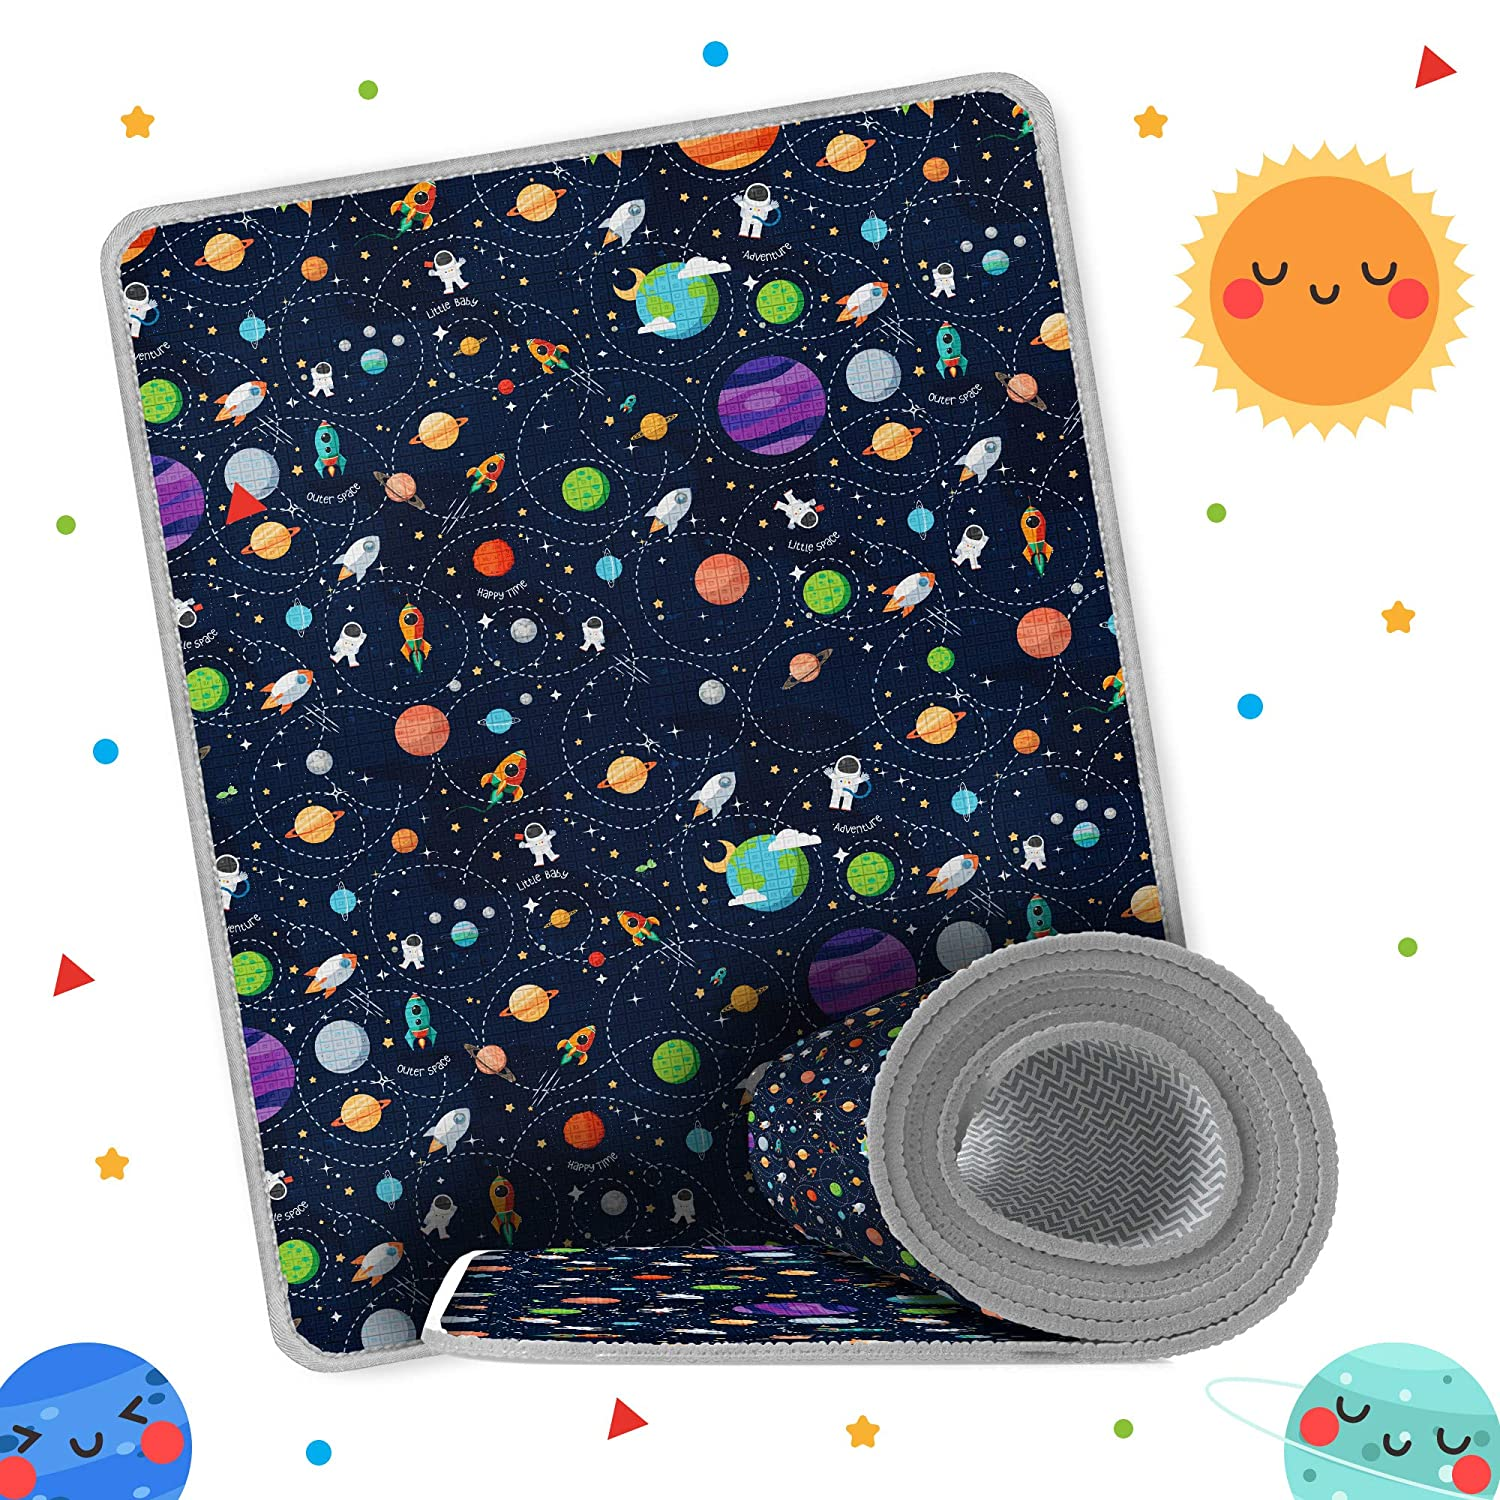 Space Baby Play Mat 79x71x0.7 Inches, Double Sided Reversible Playmat, Waterproof Anti-Slippery Activity Rug, Playful for Tummy Time